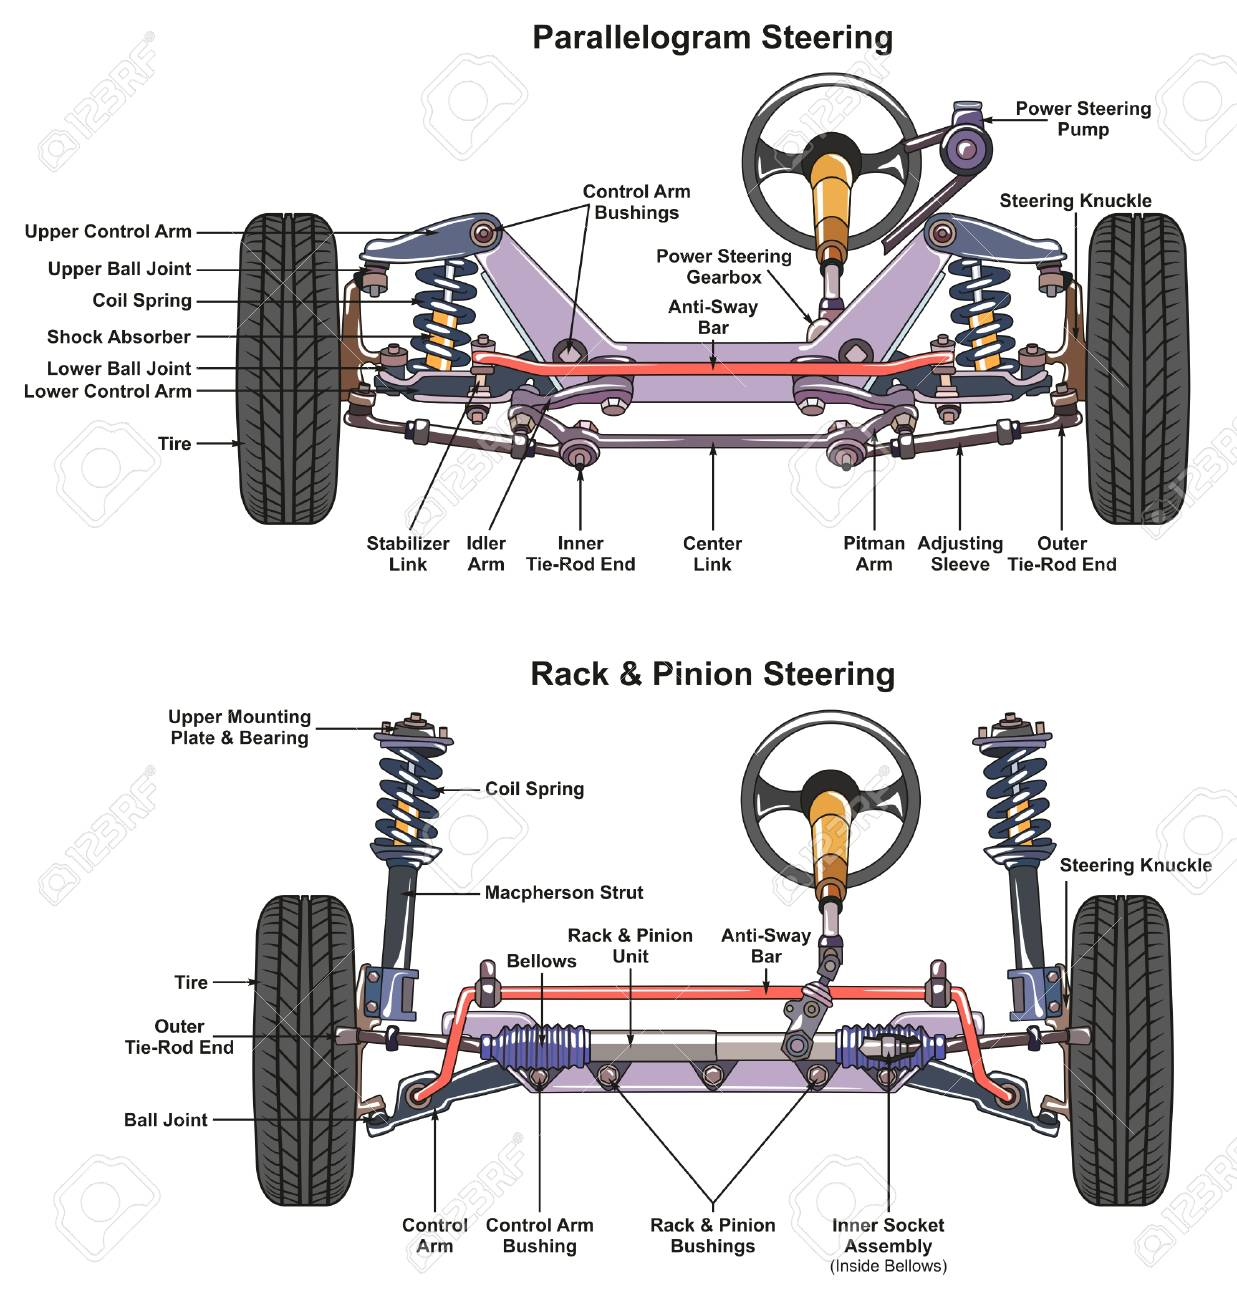 automotive steering system infographic diagram showing both types  parallelogram and rack and pinion with all parts